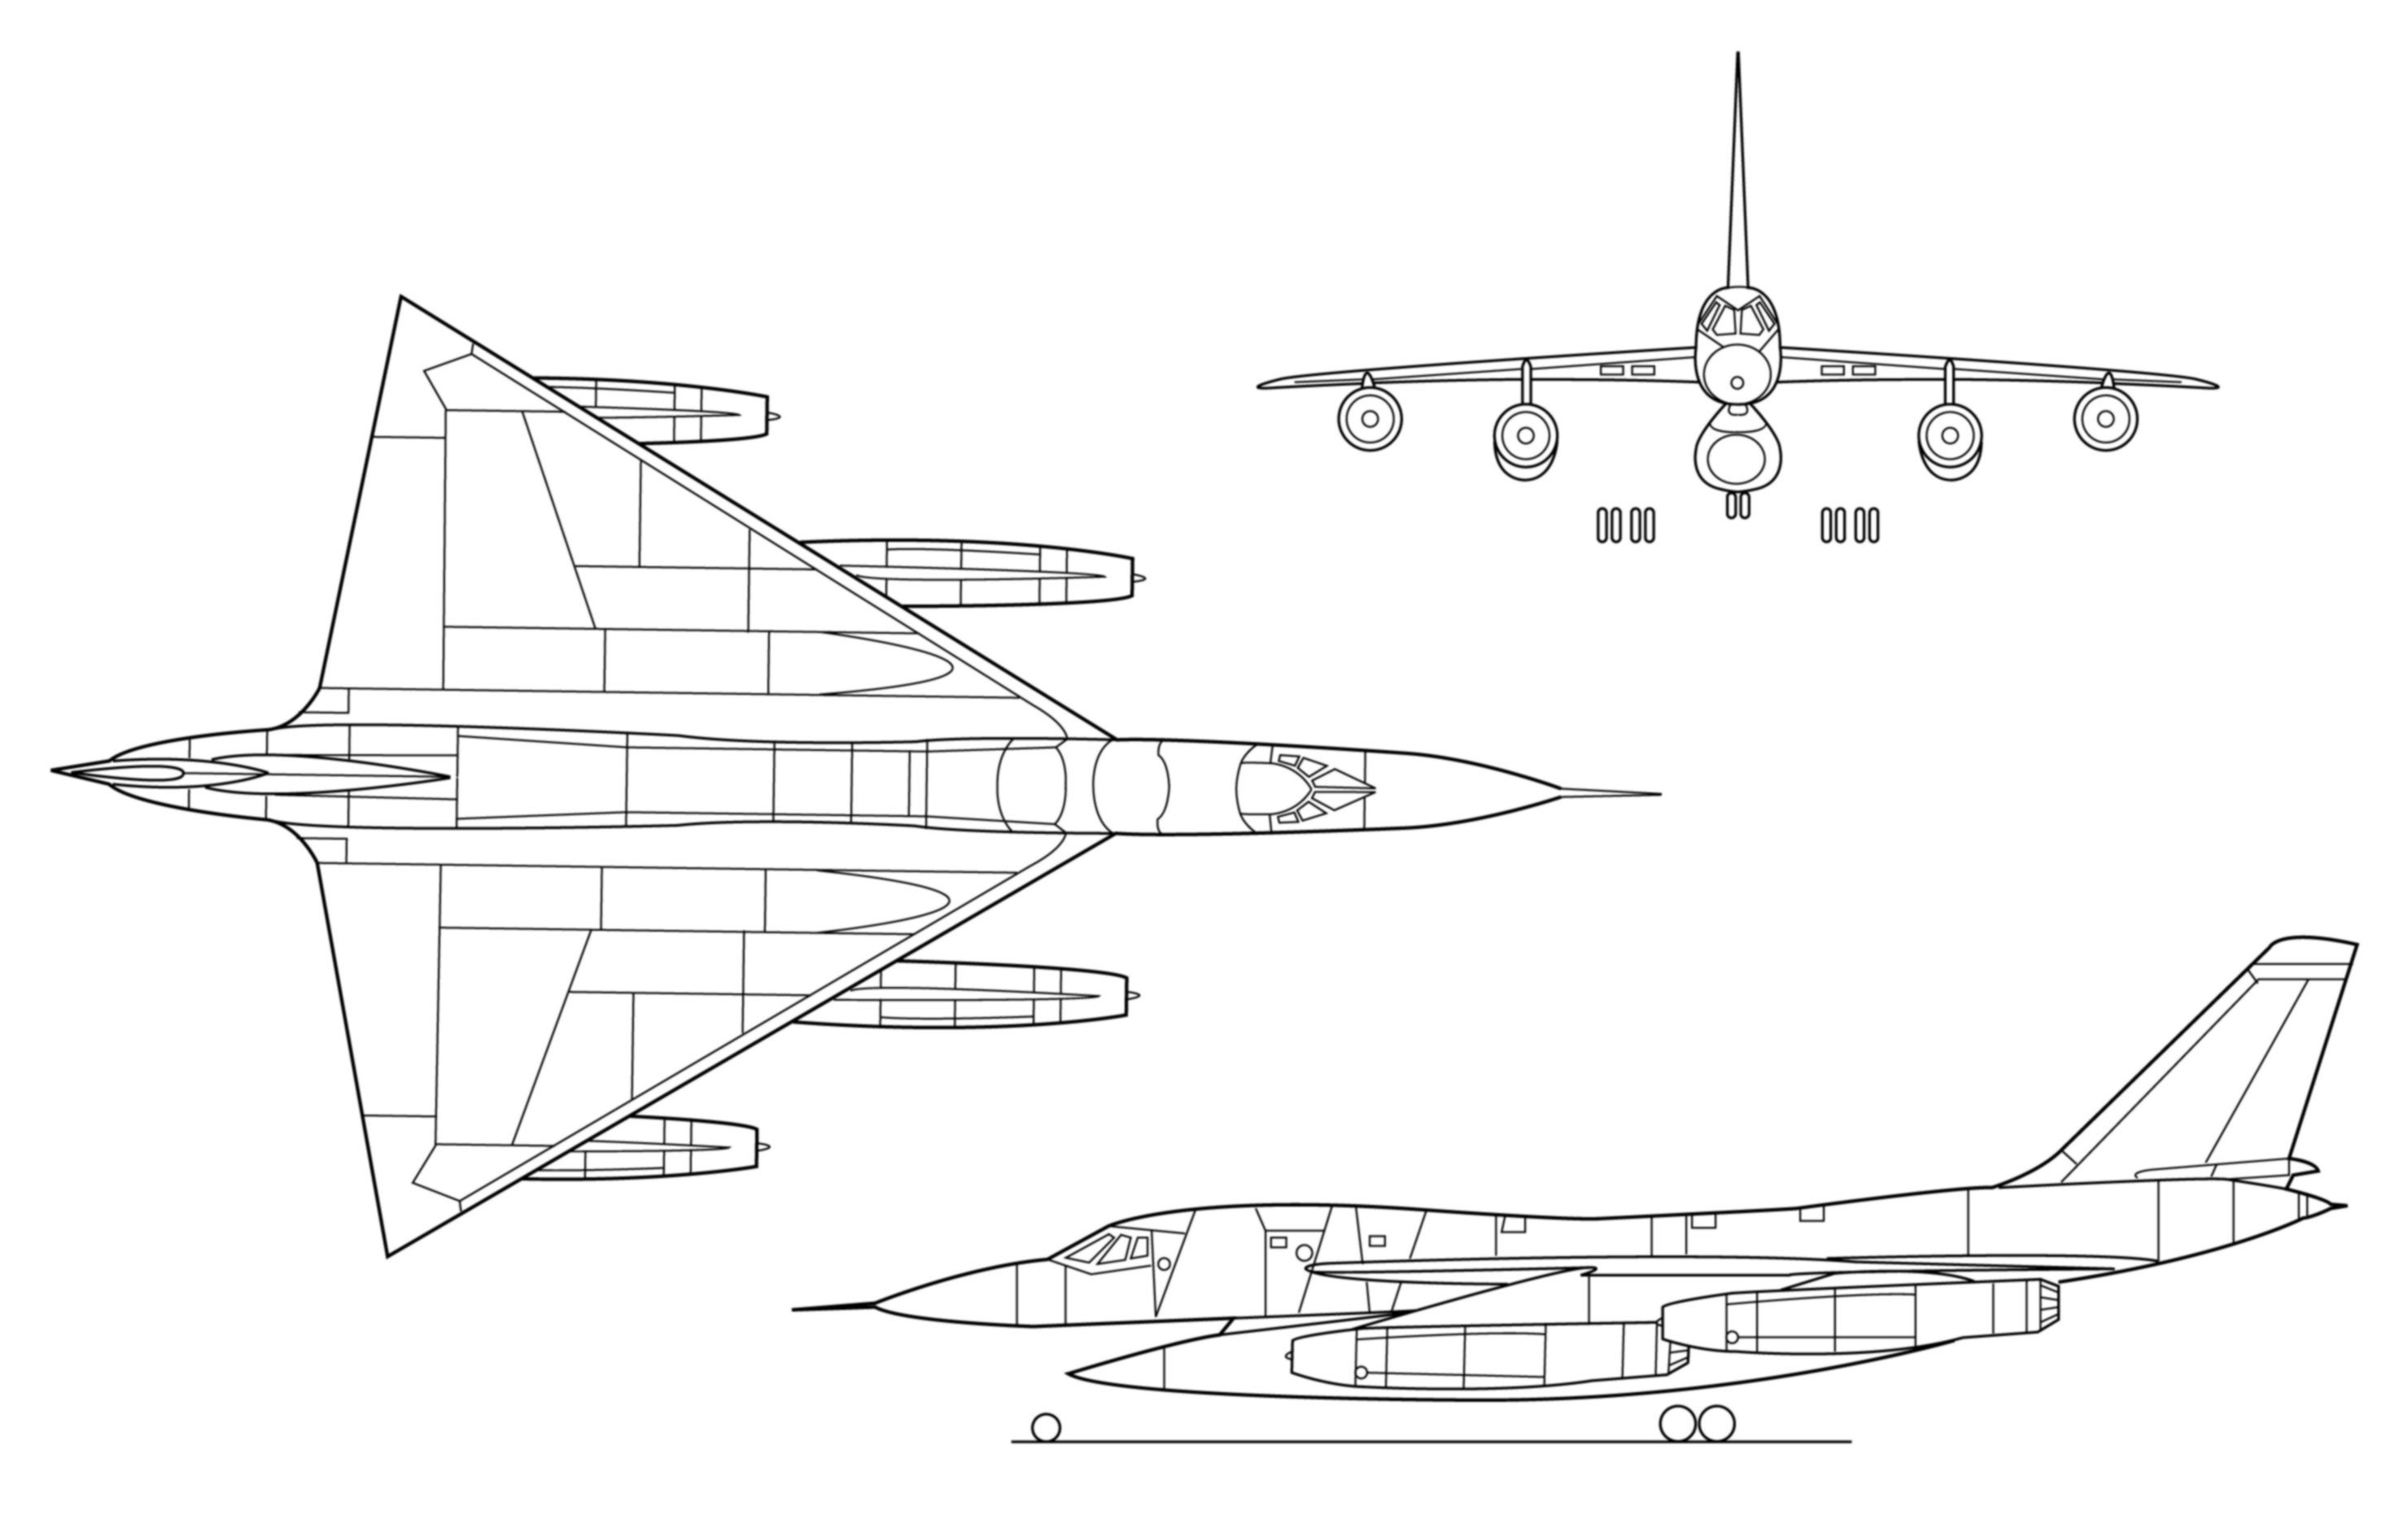 http://upload.wikimedia.org/wikipedia/commons/e/ee/B-58_3view.png